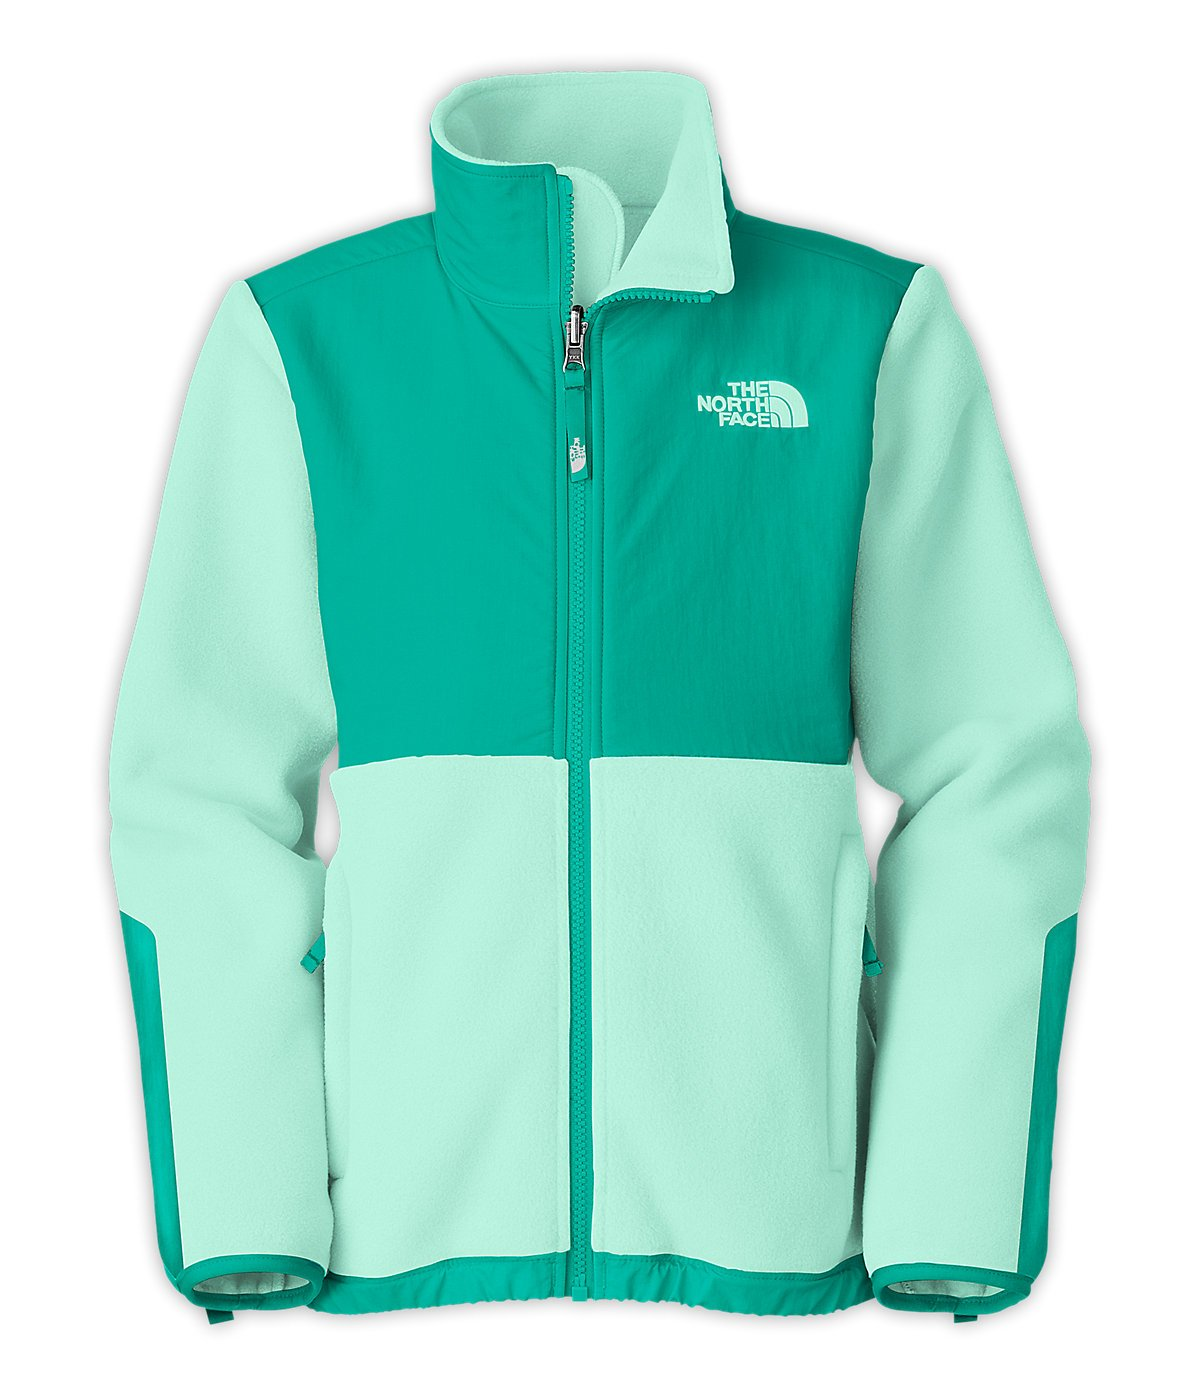 Girls Denali Jacket Style: AQGG-H9Z Size: XL by The North Face Kids